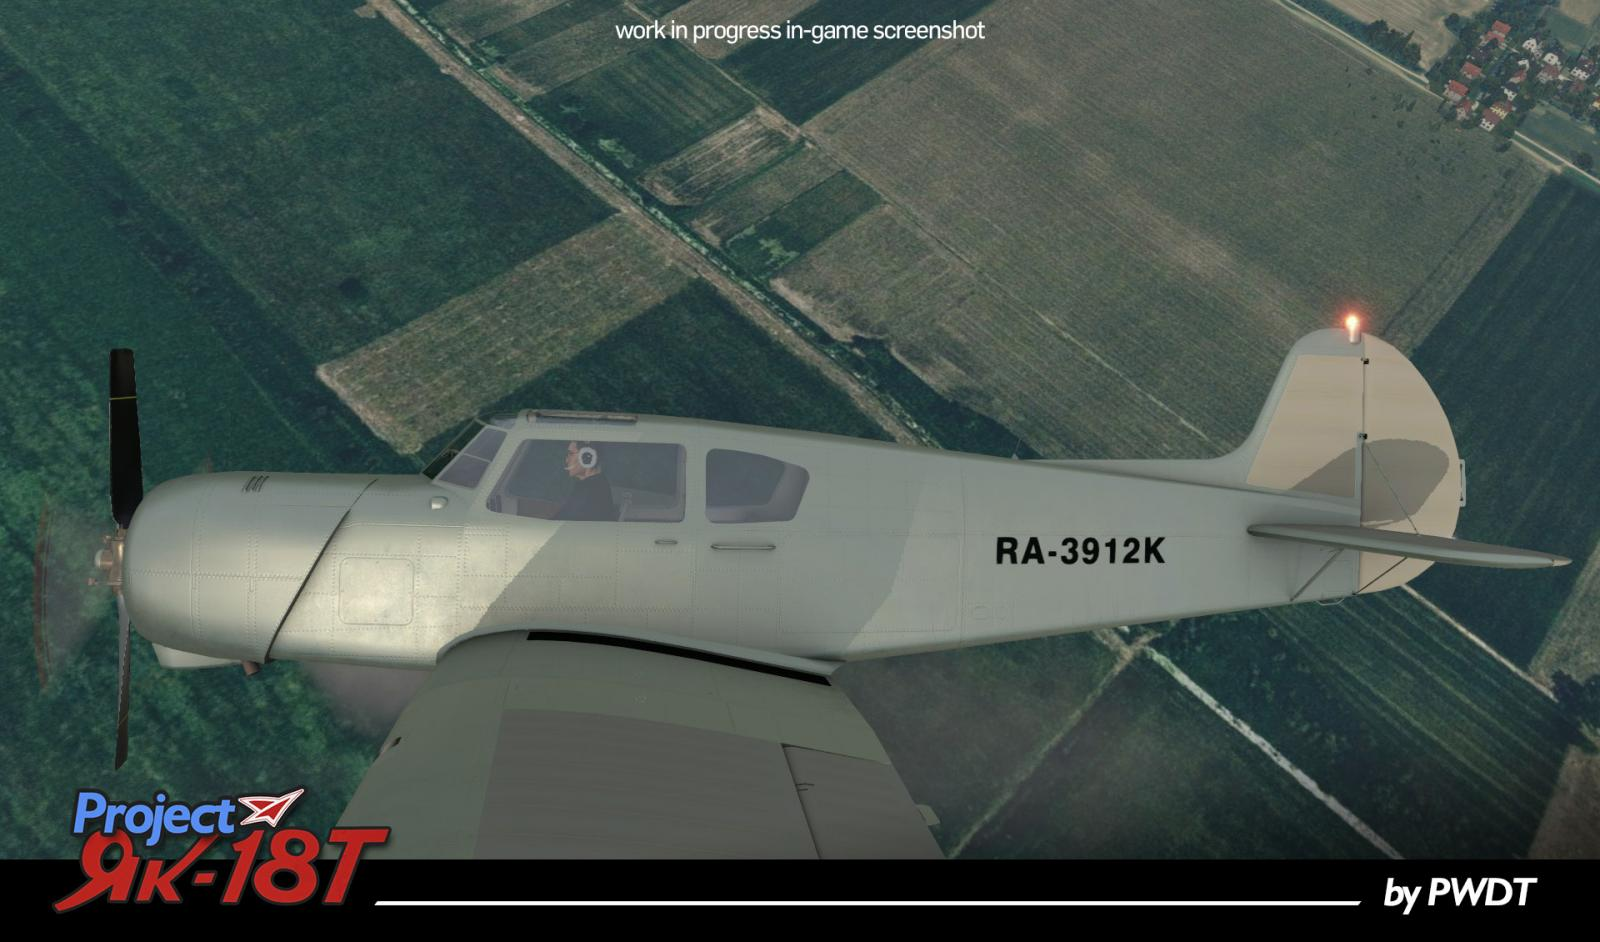 New project unveiled - The Yak-18T - Pannon Wings - X-Plane Org Forum